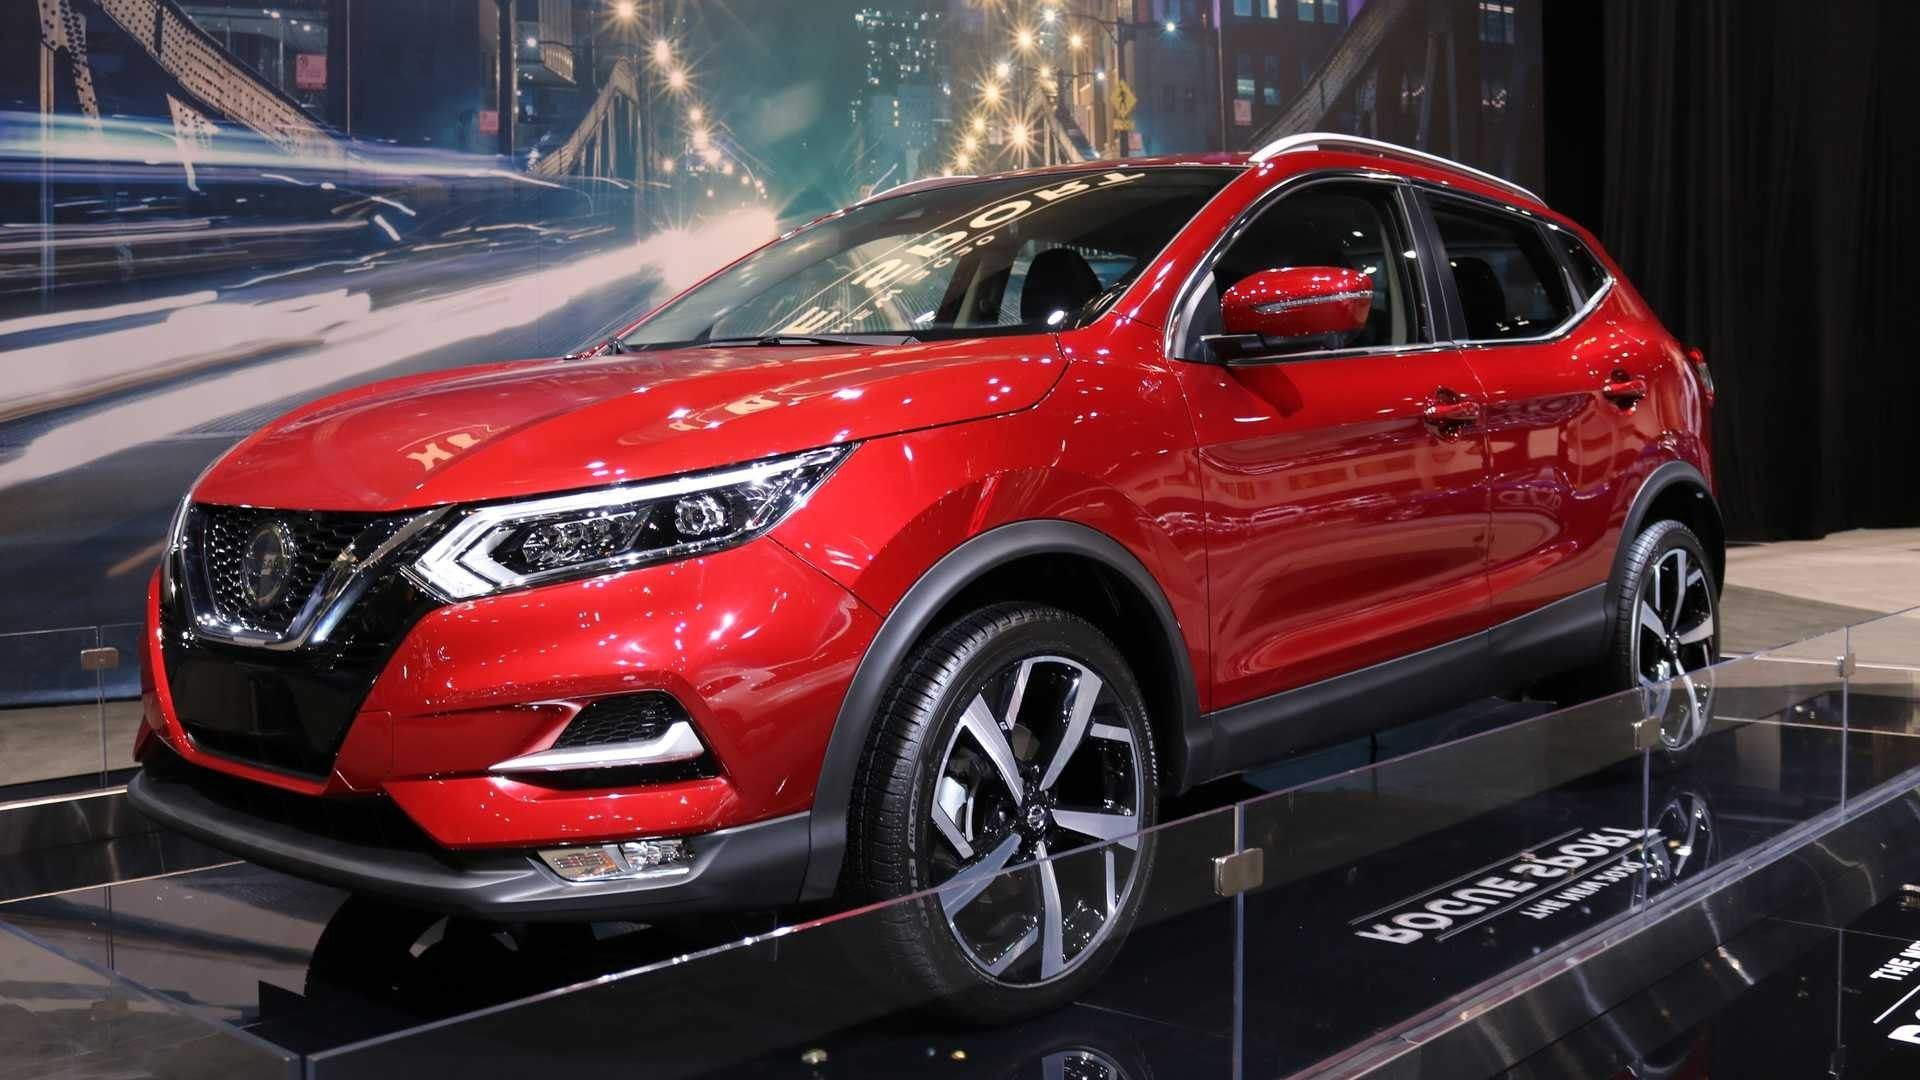 The Best Nissan Qashqai 2020 Performance and New Engine